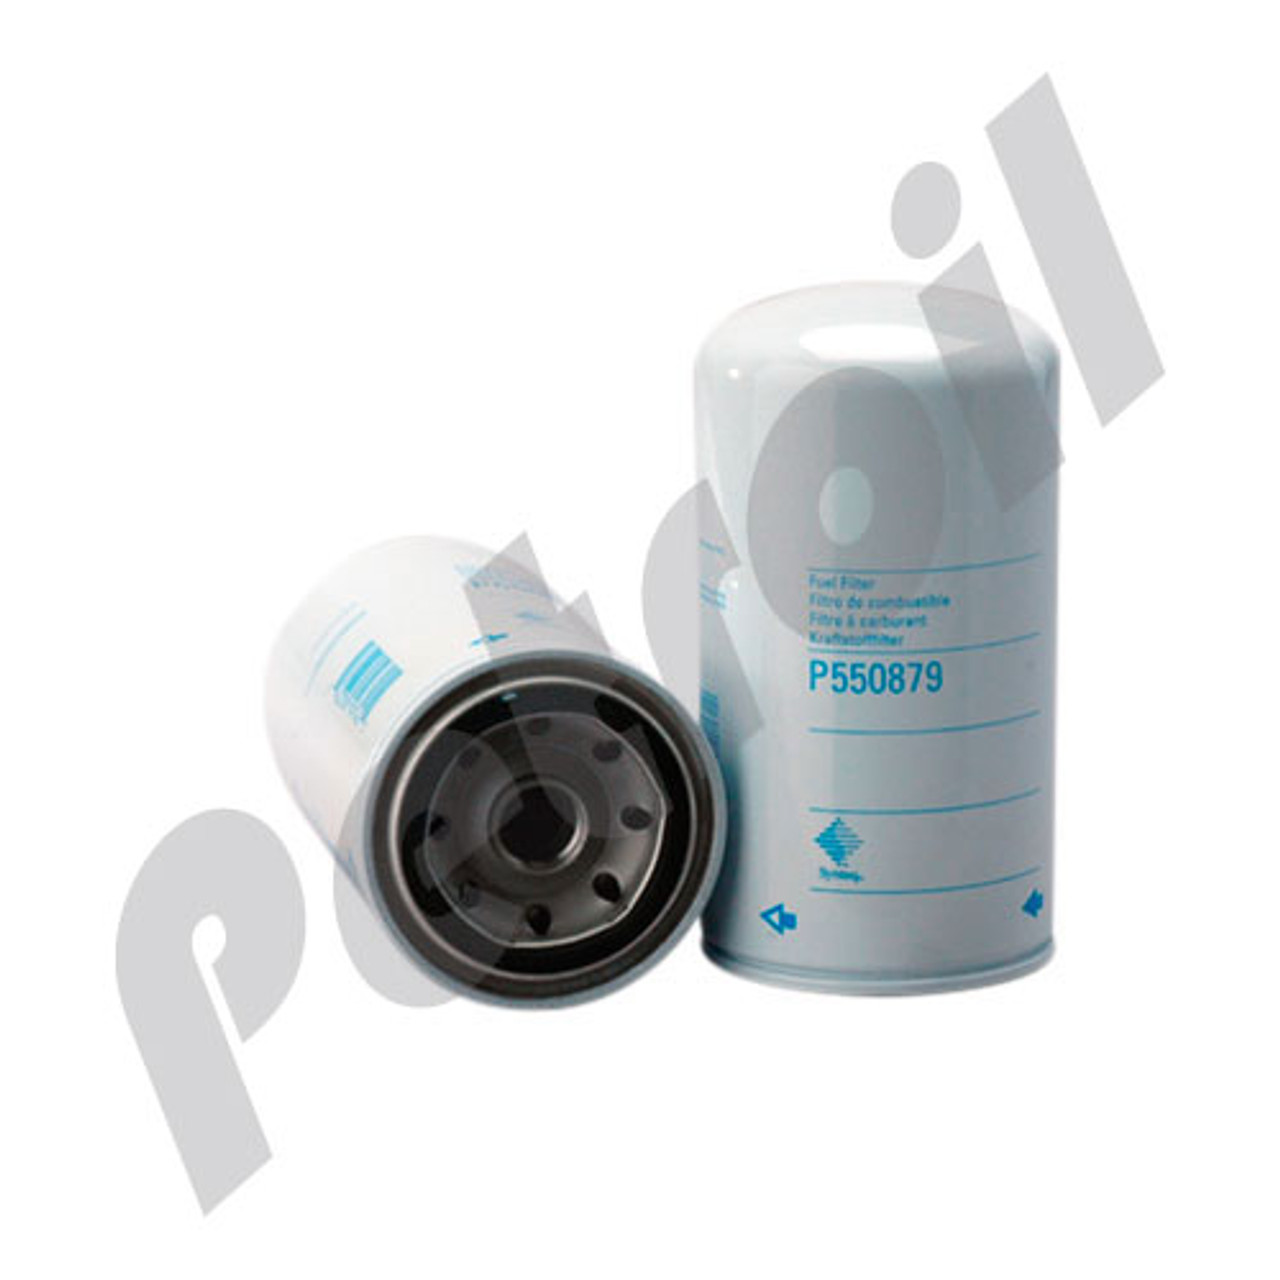 Case Of 12 P550879 Donaldson Fuel Filter Spin On Cummins 4940647